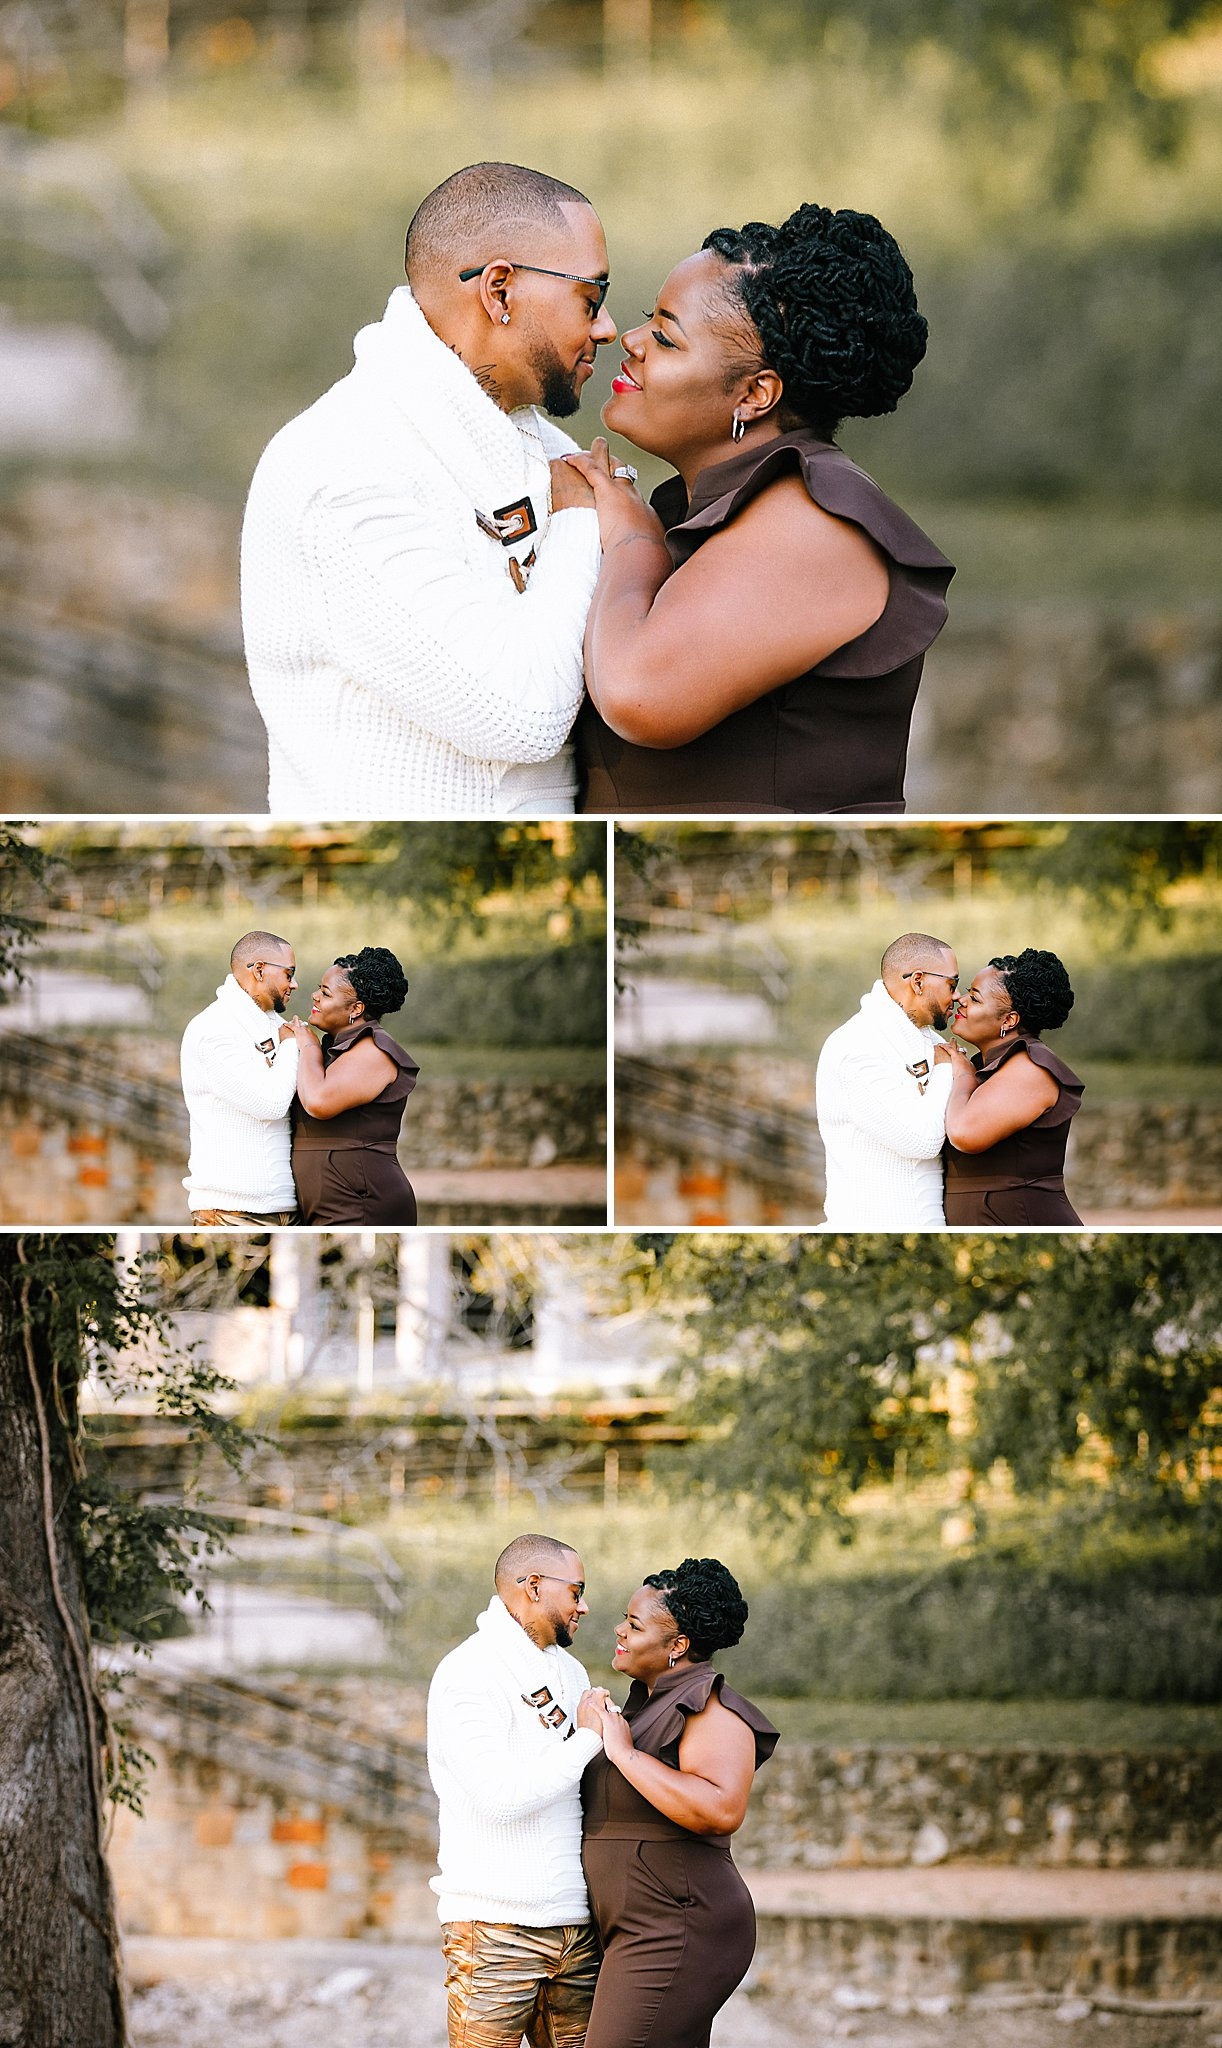 Carly-Barton-Photography-Texas-Engagement-Session-San-Antonio-Photos_0044.jpg